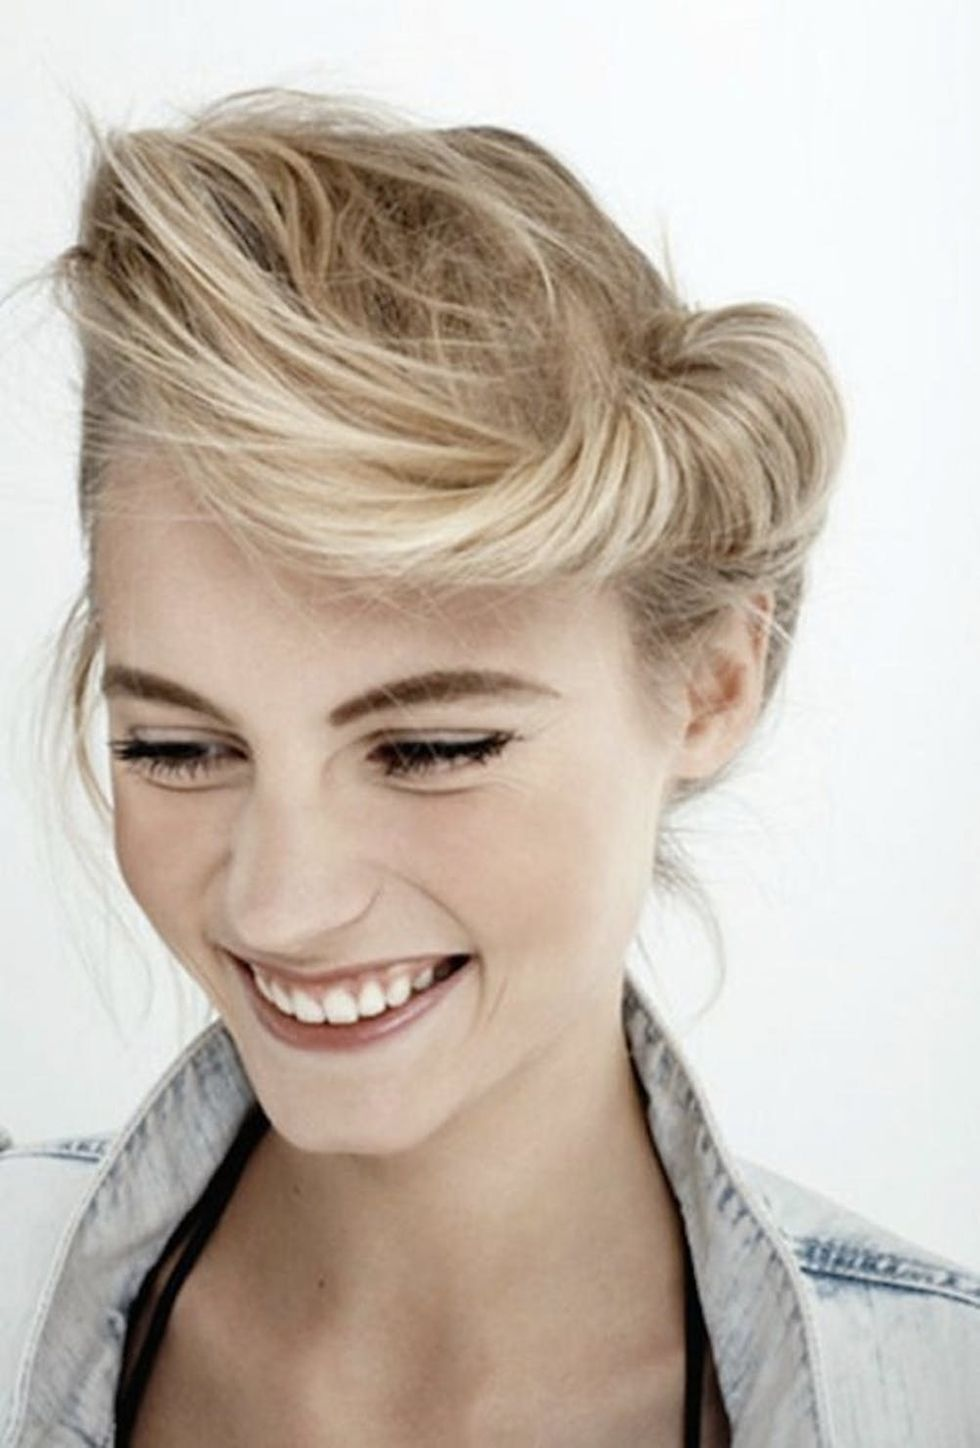 Adored Vintage 12 Vintage Hairstyles To Try For: 15 Ways To Wear Bangs While They Grow Out